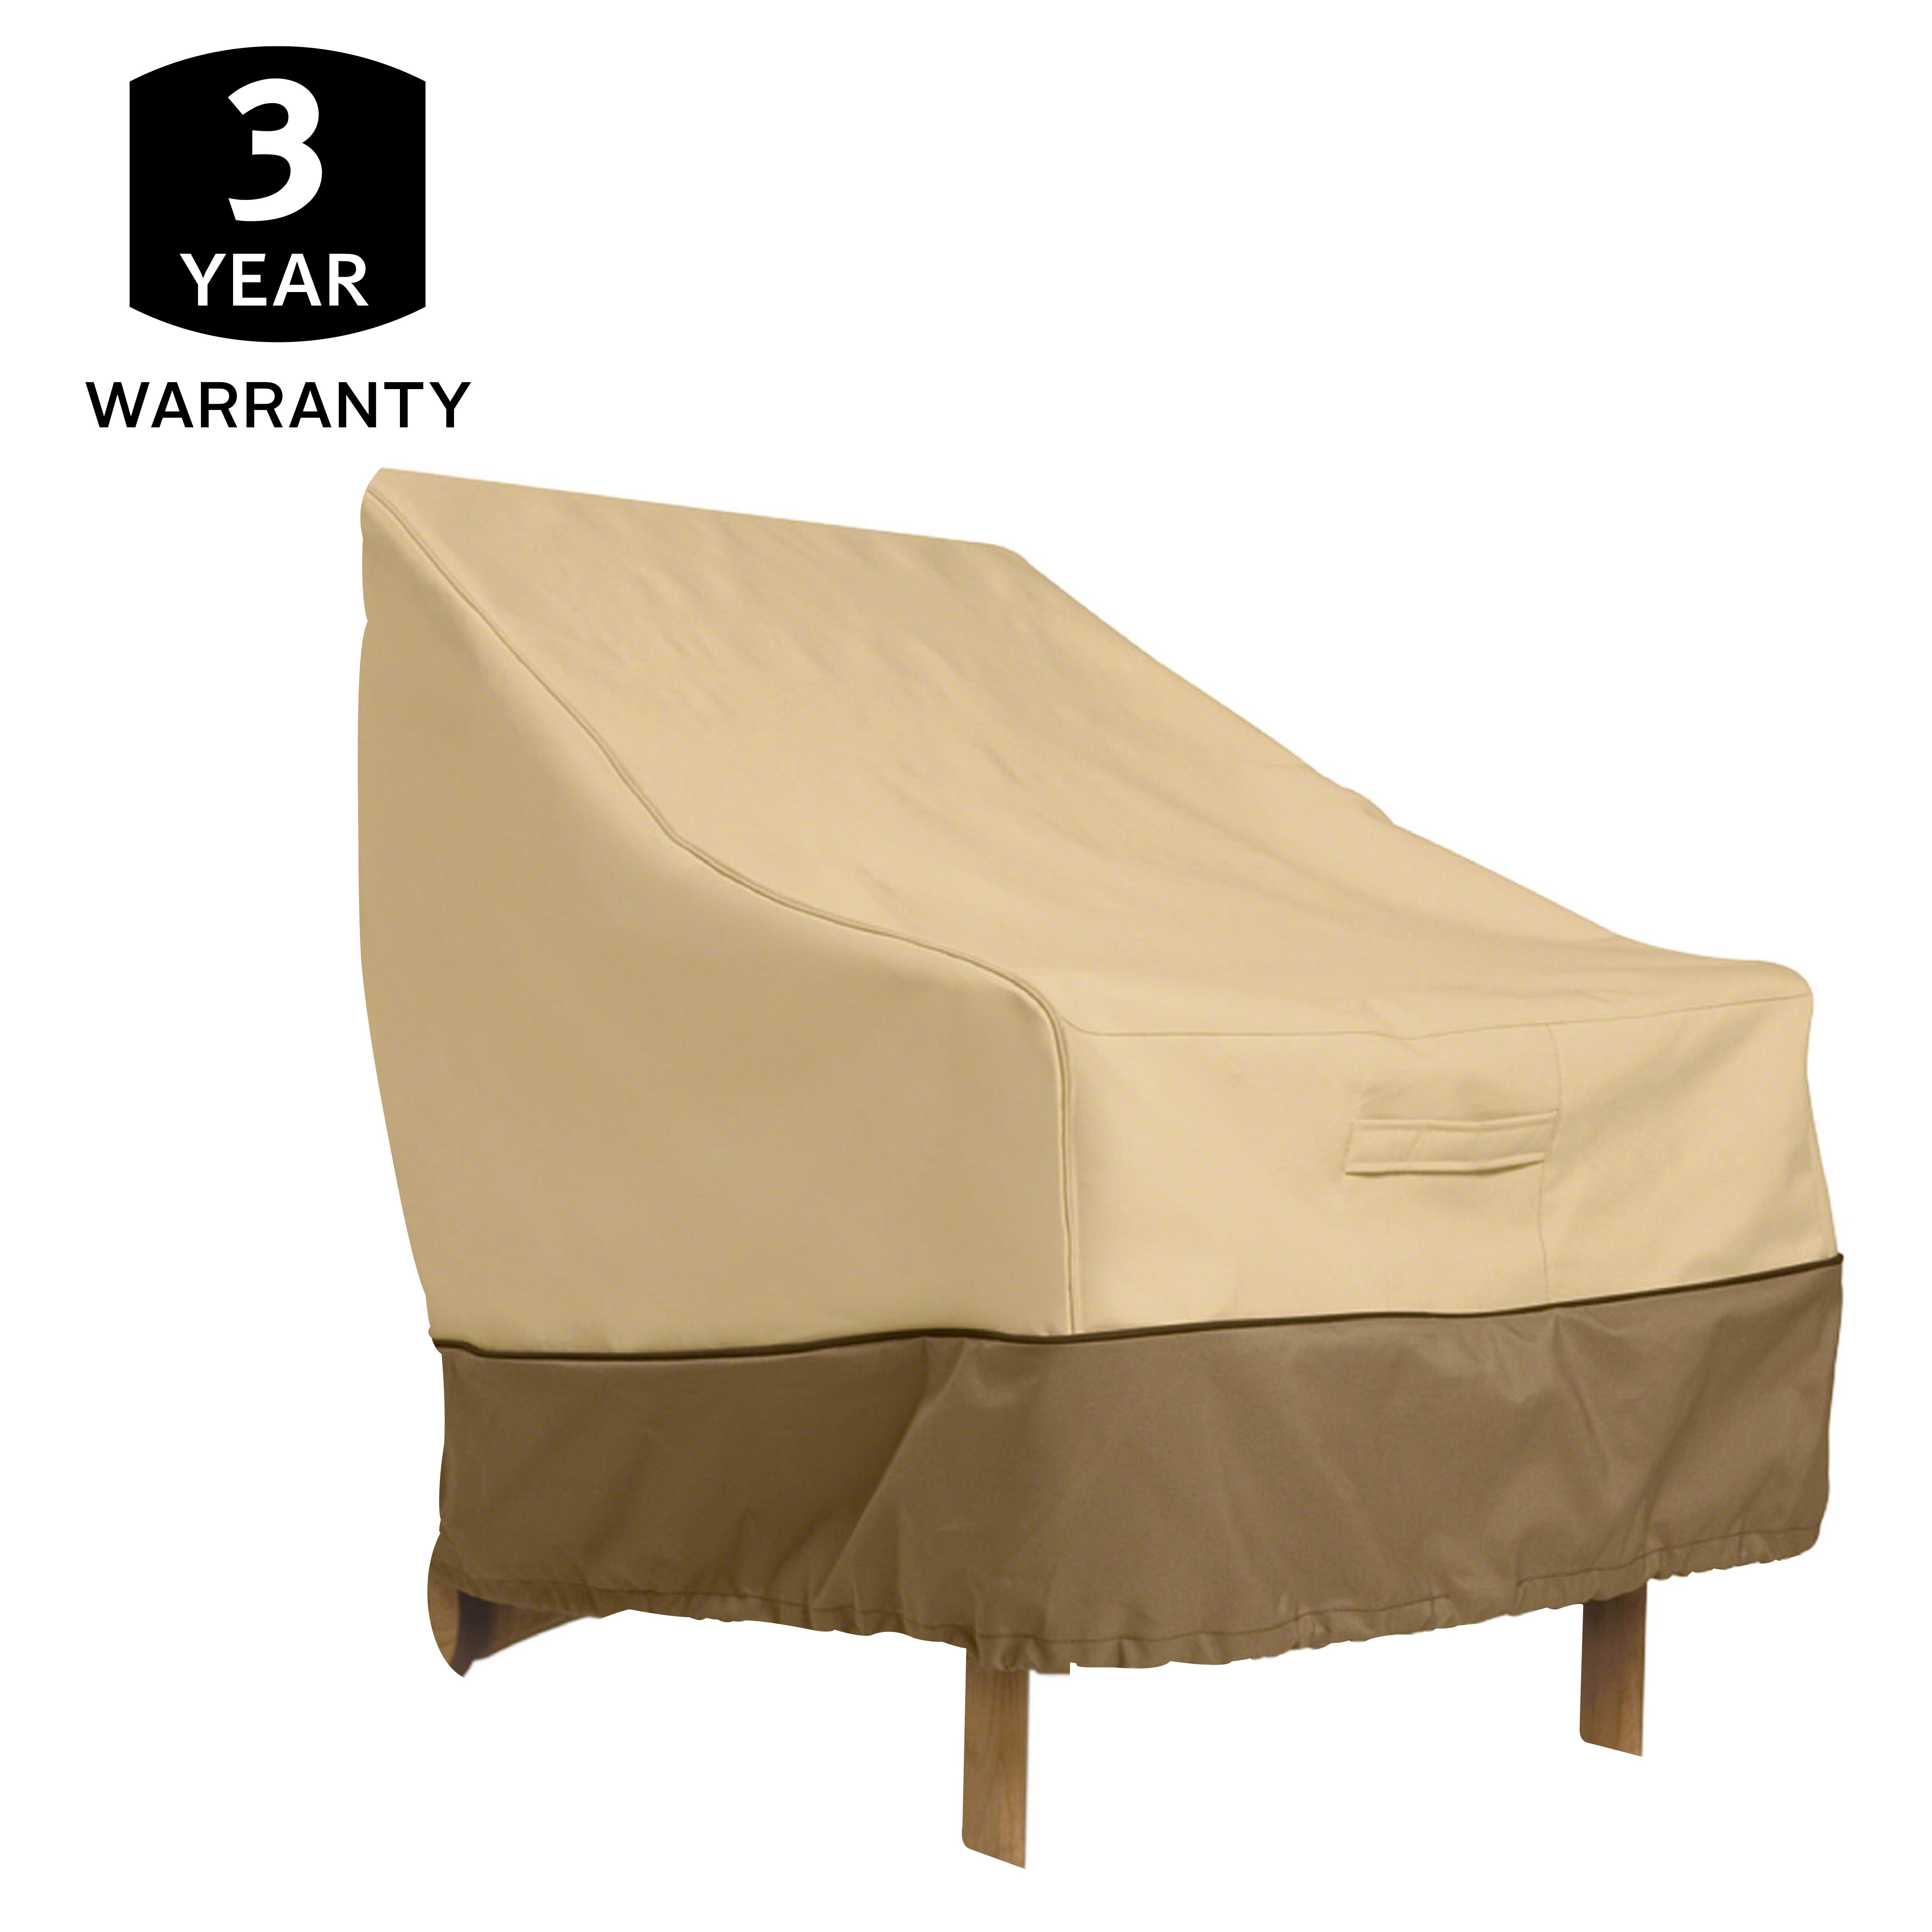 chair covers on amazon handicap lift chairs stairs classic accessories veranda patio lounge